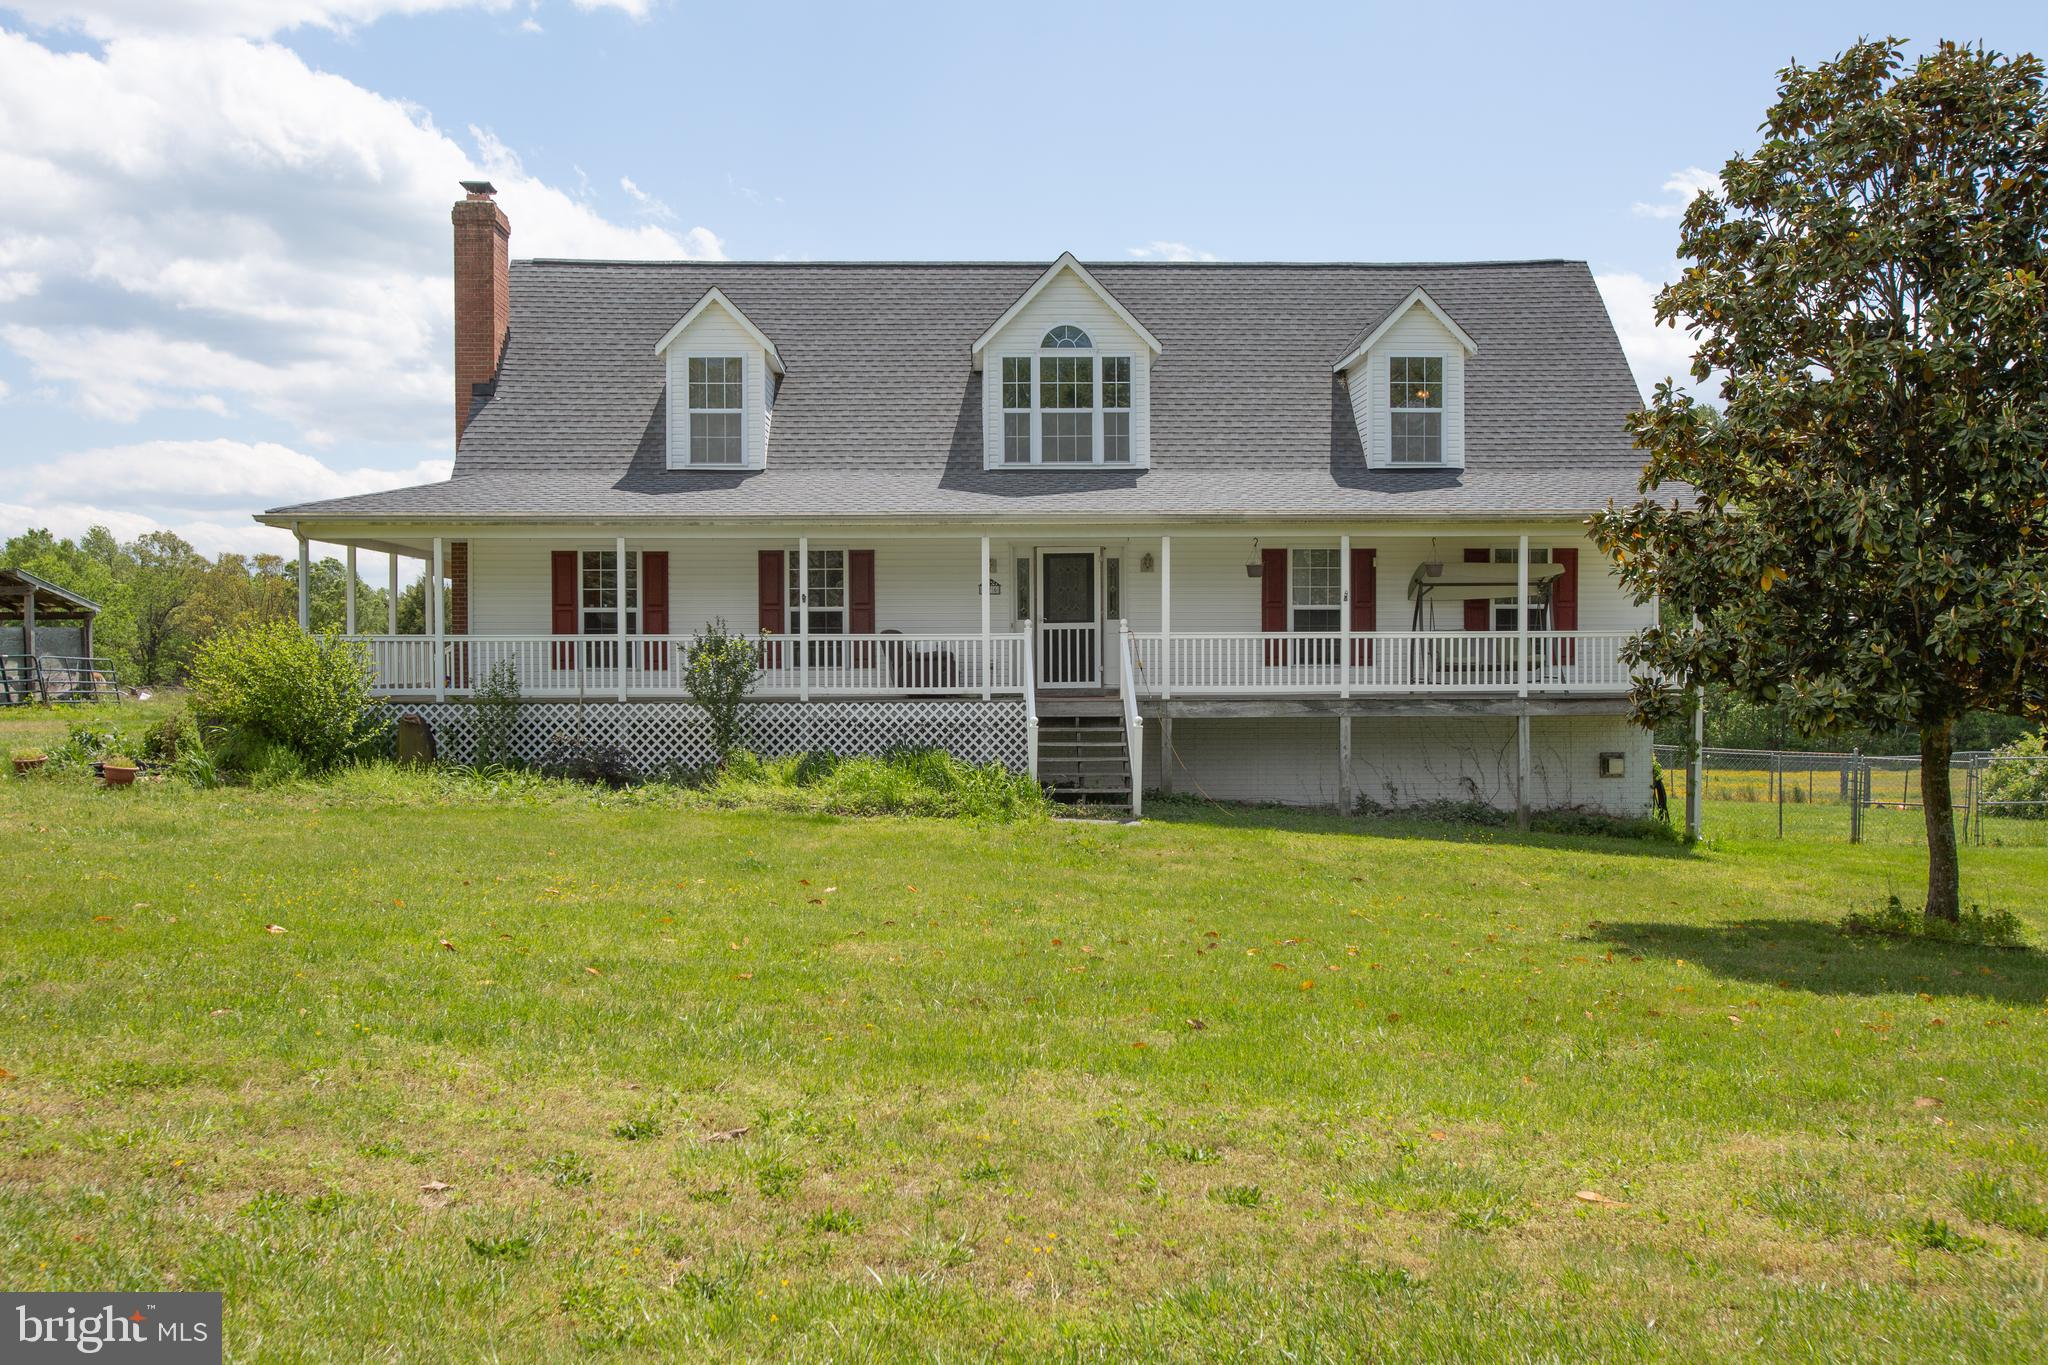 676 Apple Grove Rd, Mineral, VA, 23117